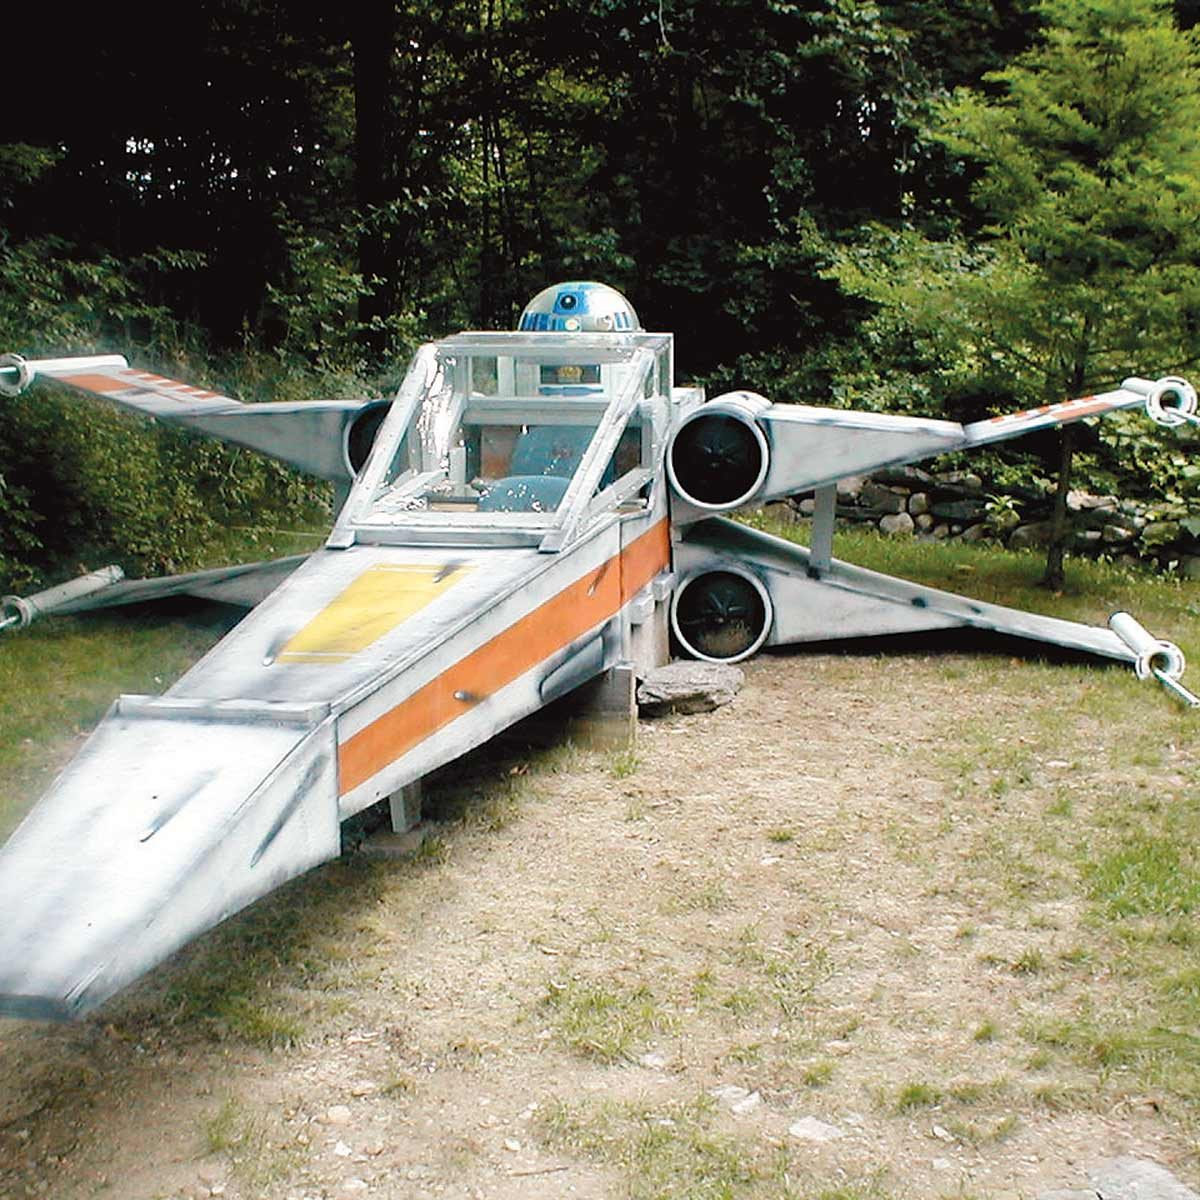 Starfighter Play Set